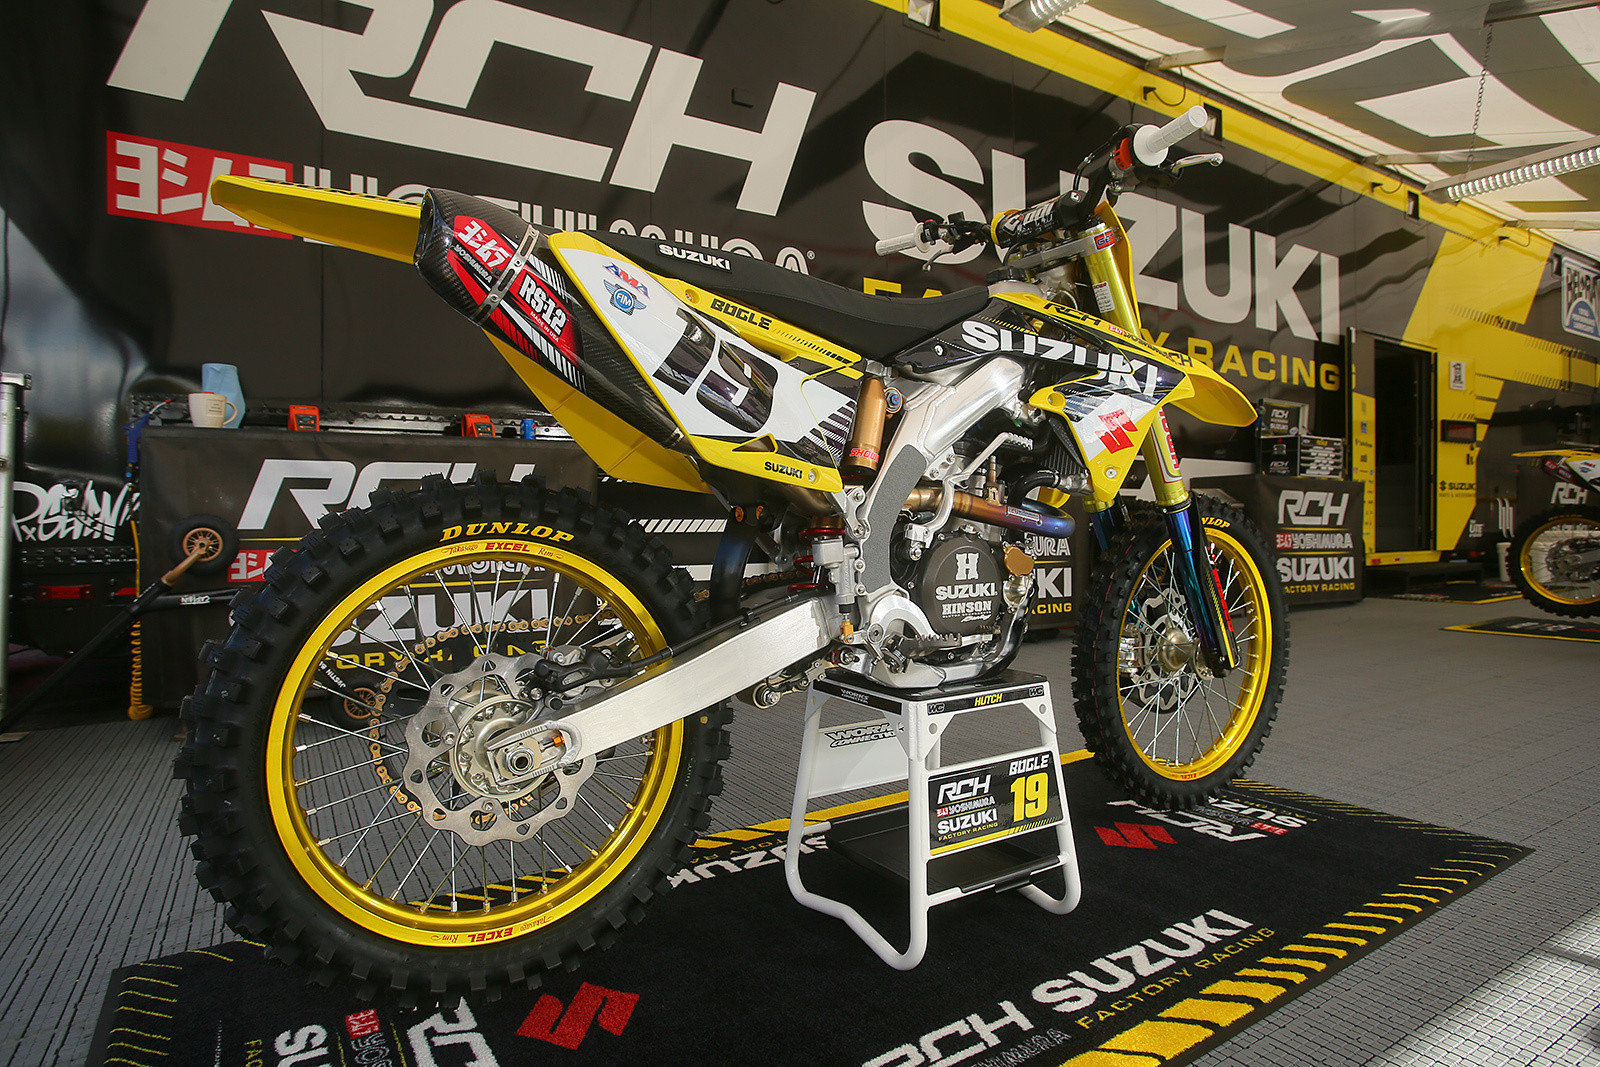 RCH Racing and Suzuki Conclude Partnership